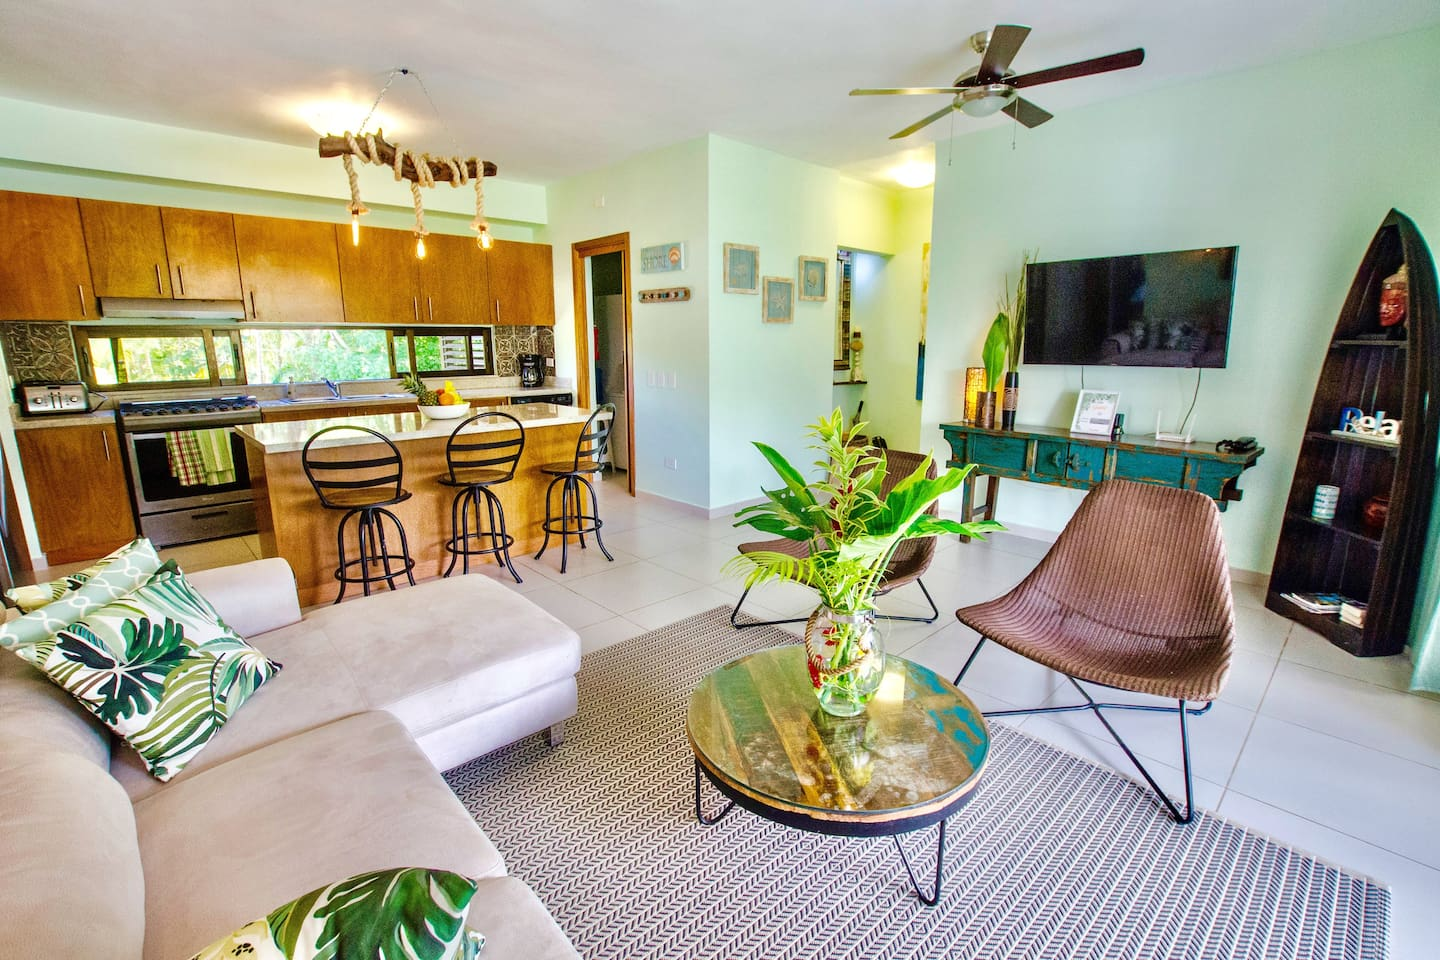 Fresh! newly redecorated! One of the largest 2/2 apartments in Los Cocos. large kitchen, Laundry room, walk in closet and balcony in master bedroom with king bed. Guest room, two full size beds. Space for luxury twin mattress.